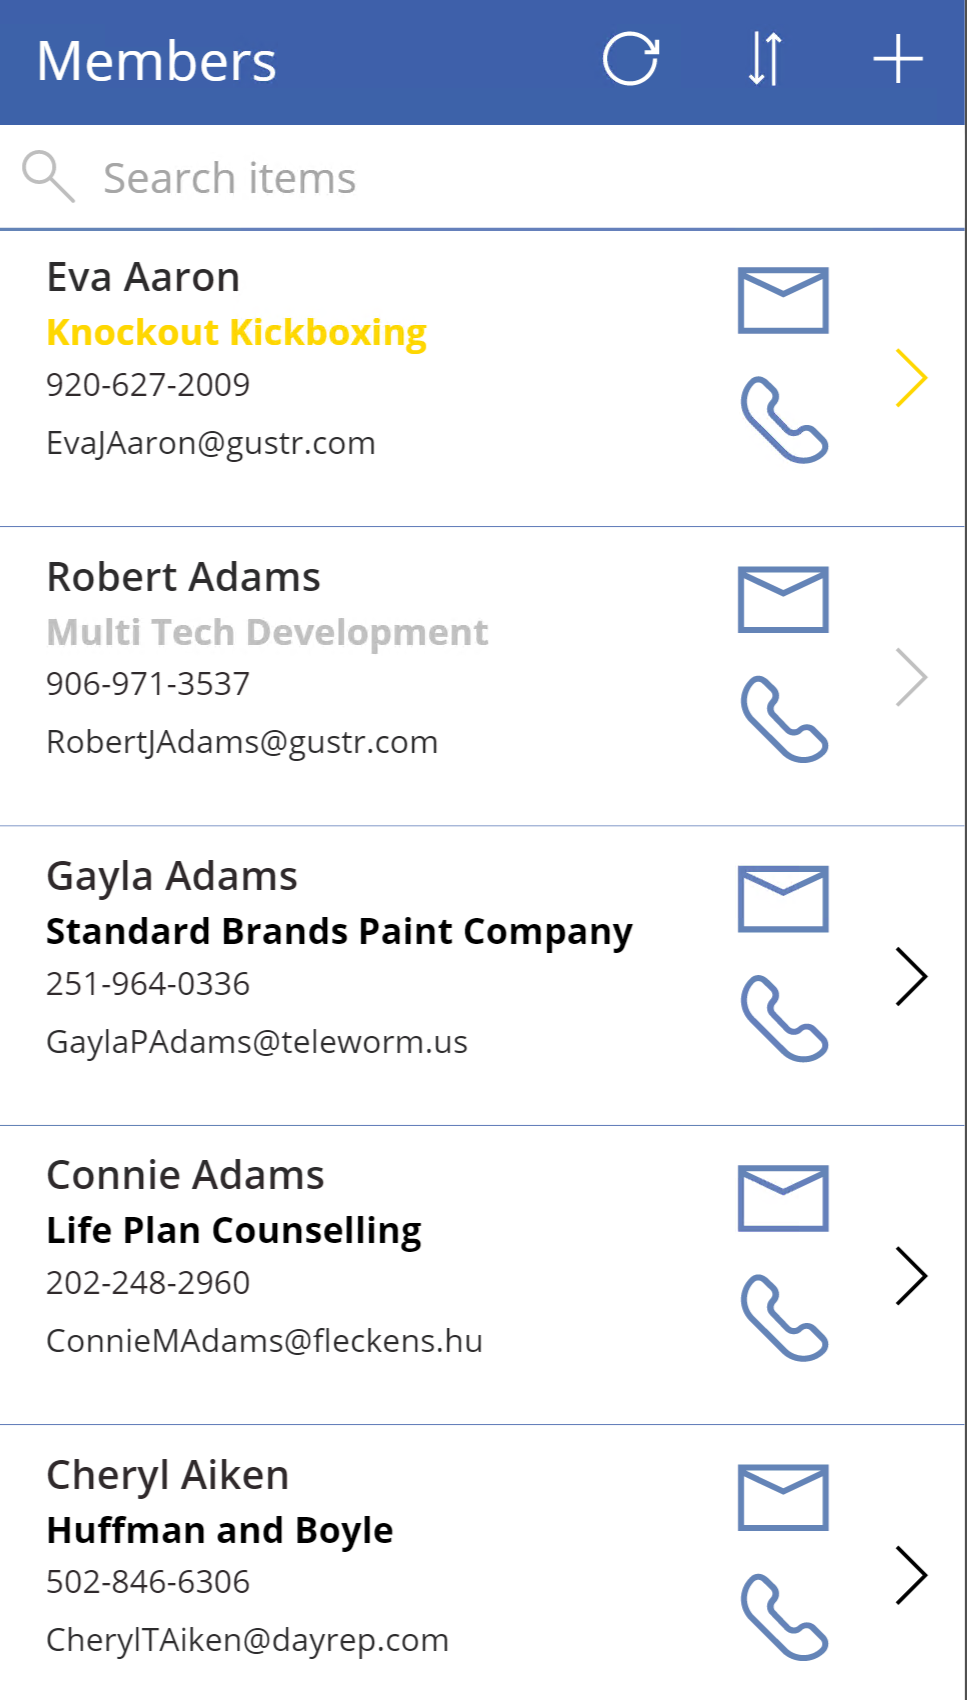 And access the contacts on your mobile device - everything stays in sync.